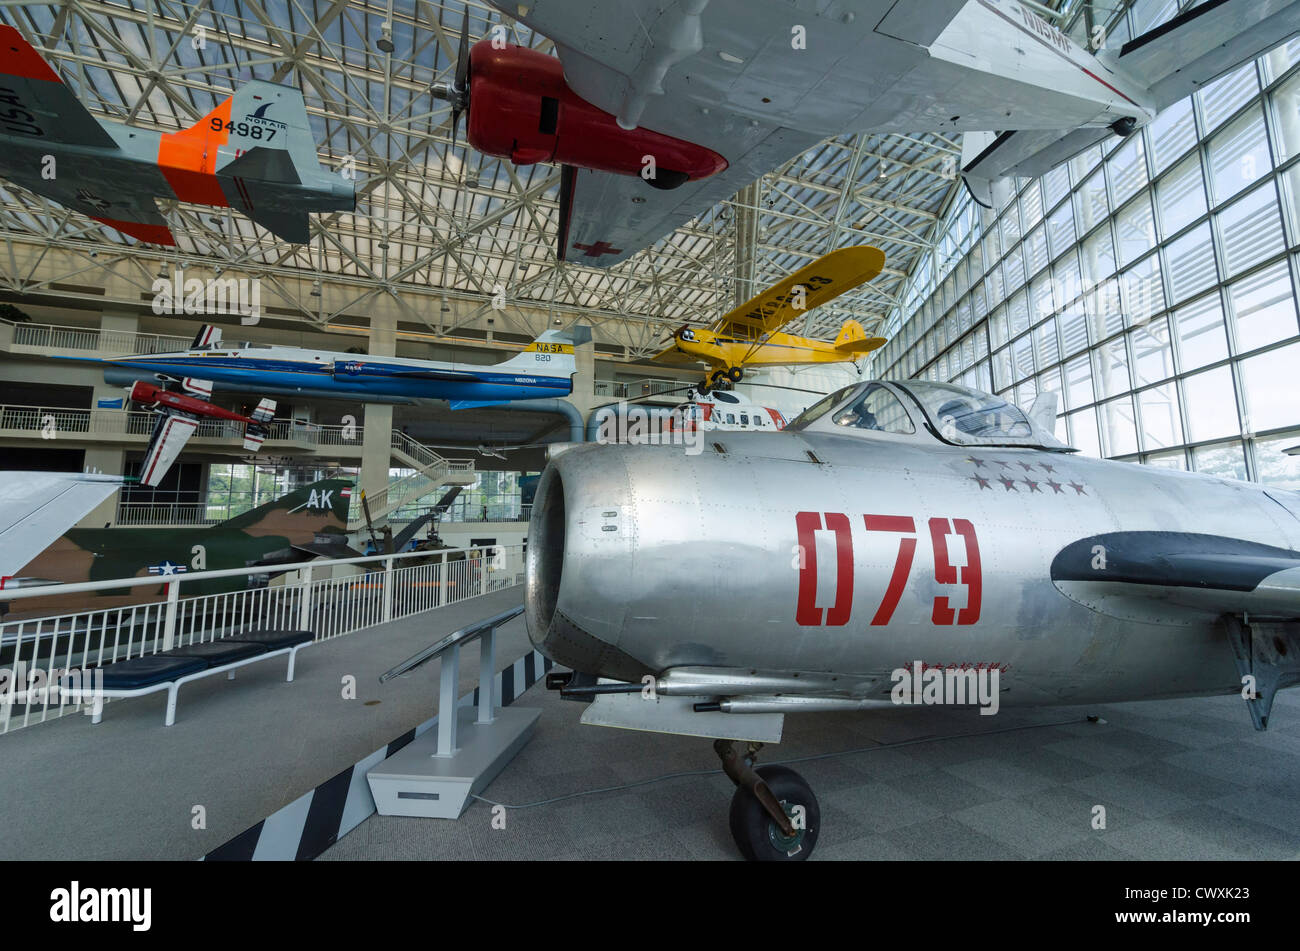 At the Museum of Flight, Seattle, USA - Stock Image